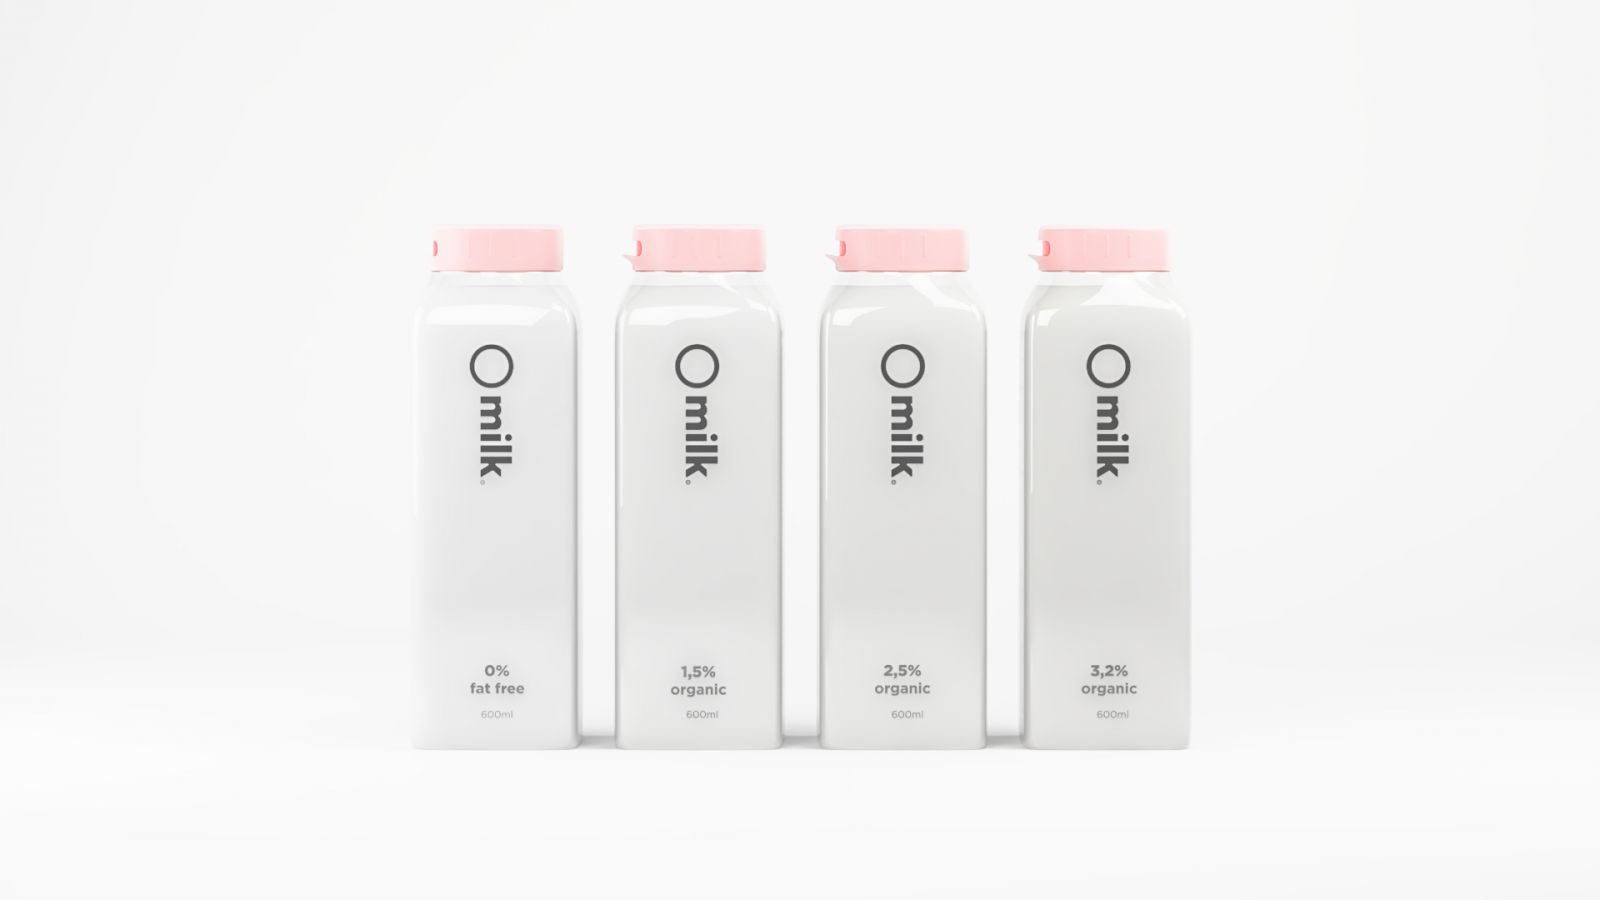 Branding and Packaging Design: Milk